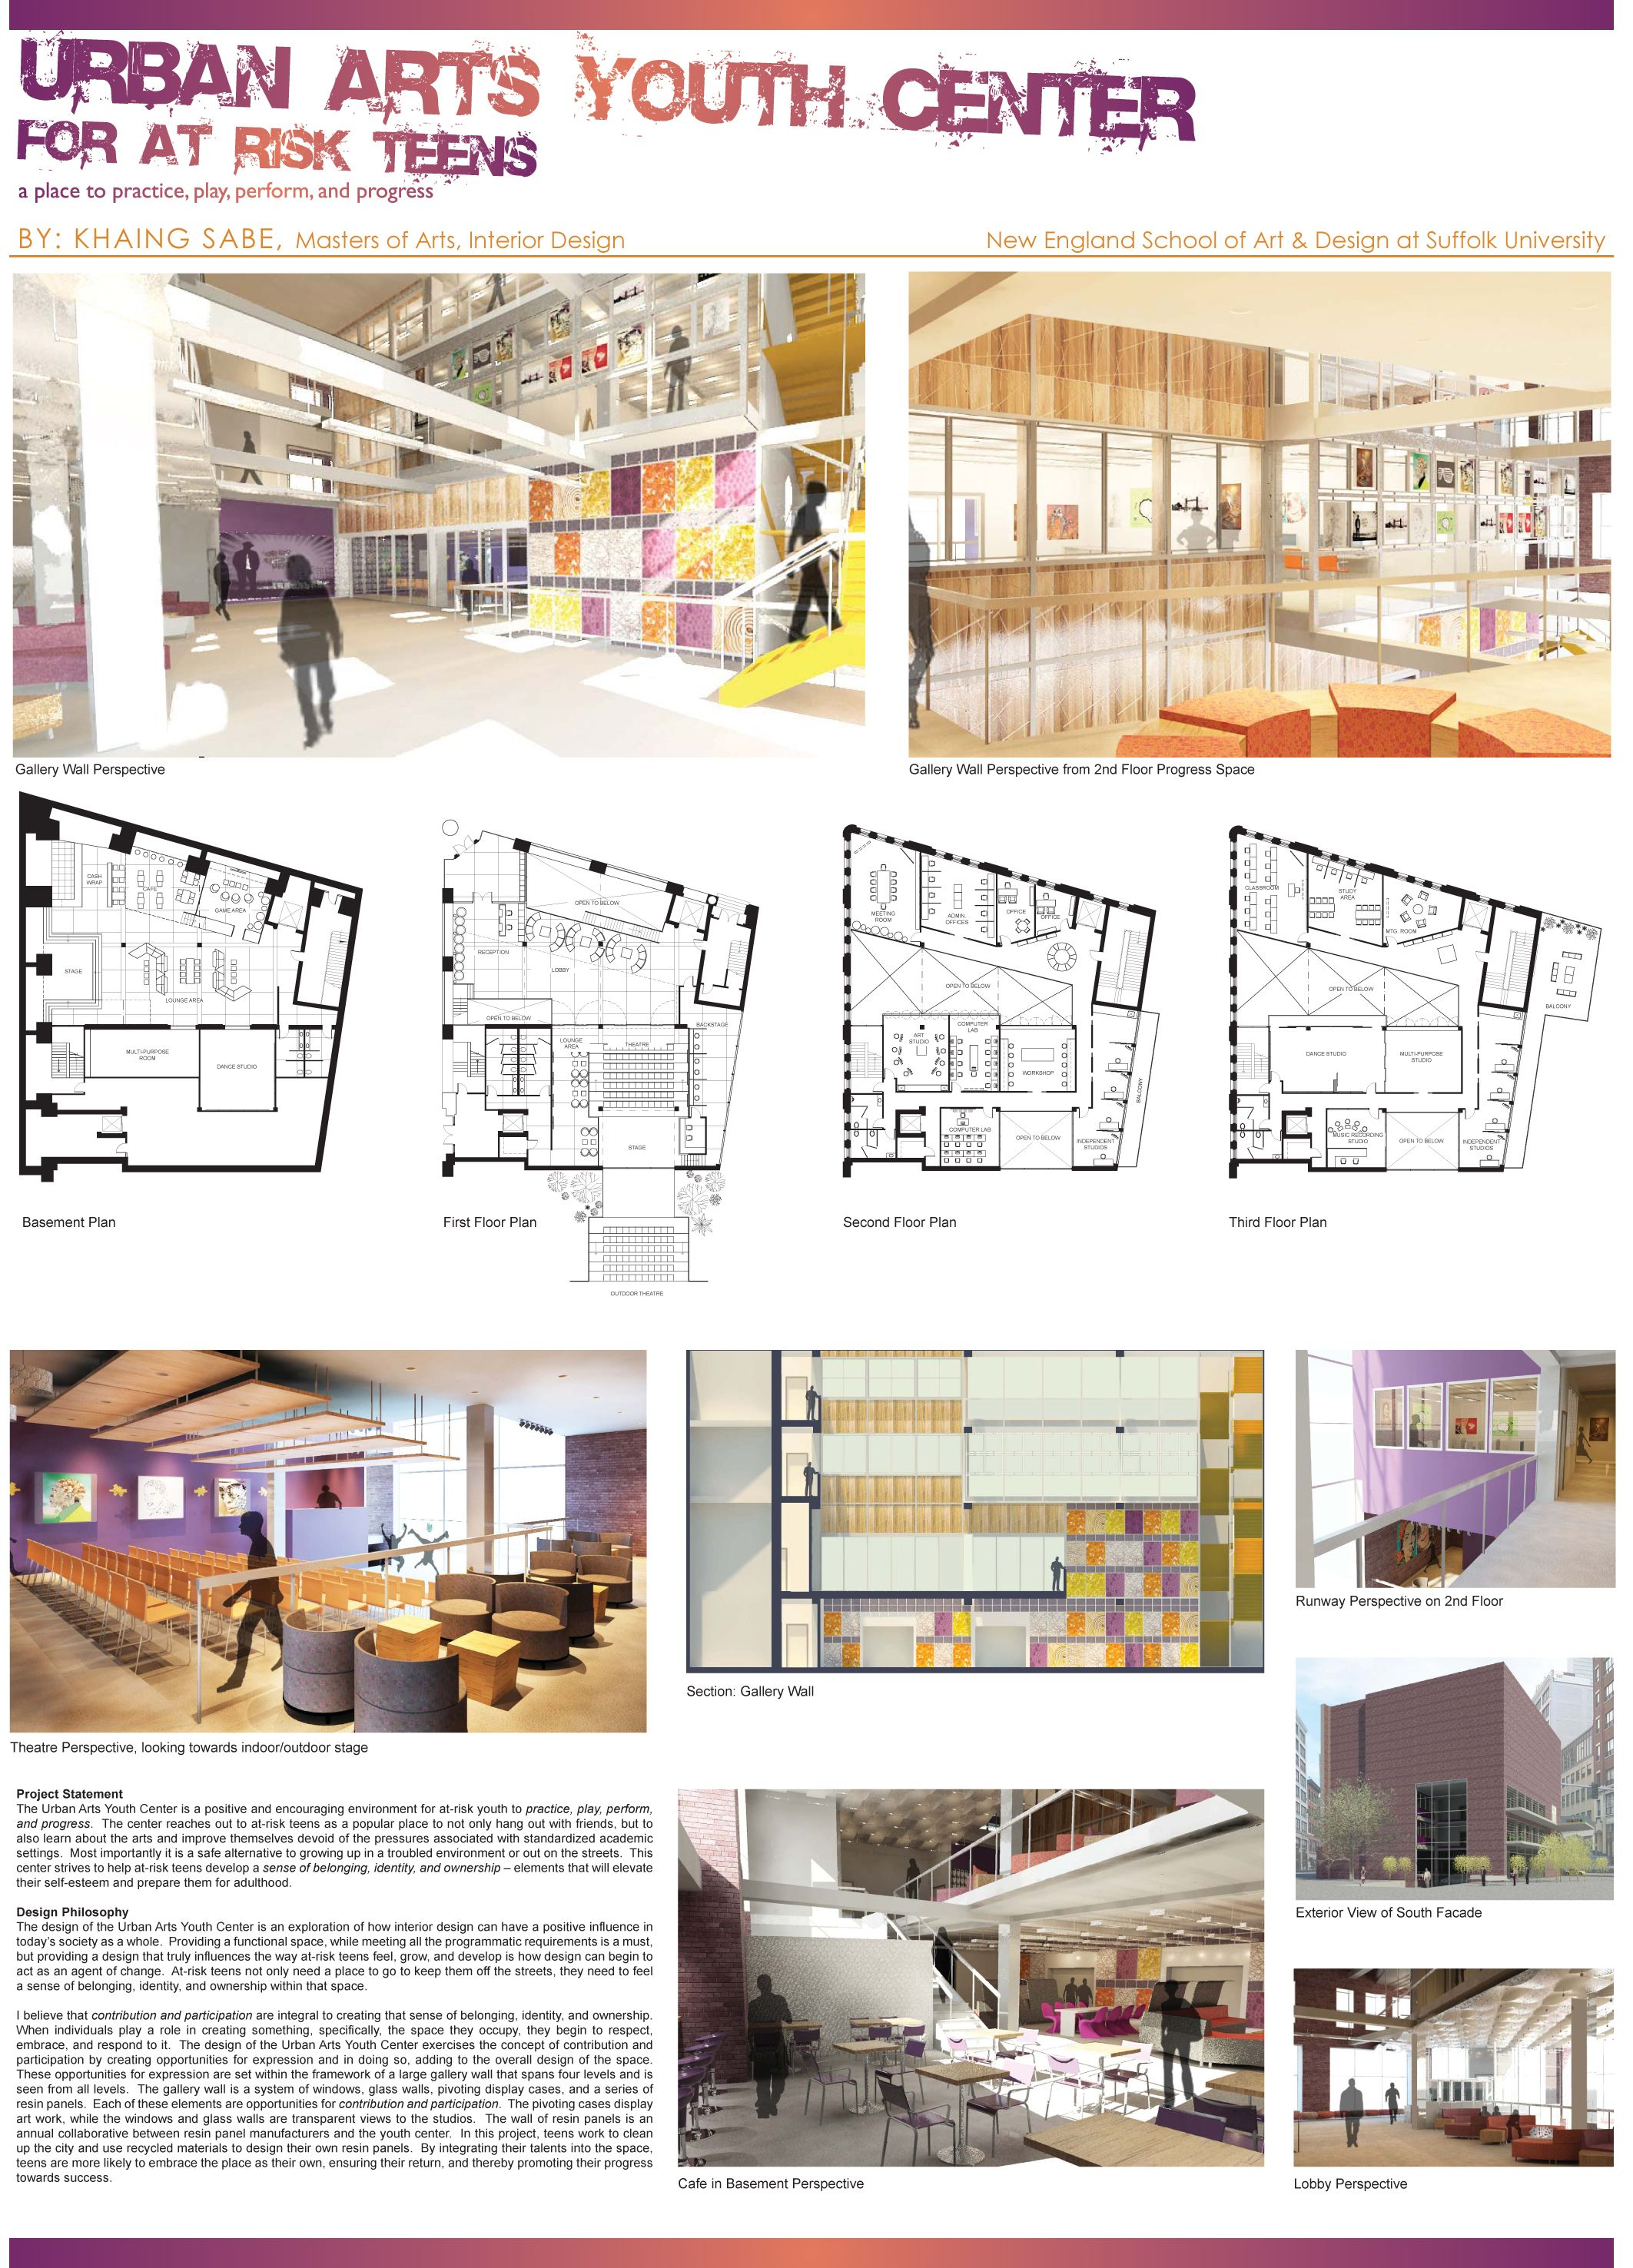 30by42 Board Jpg 2125 2952 With Images Interior Design